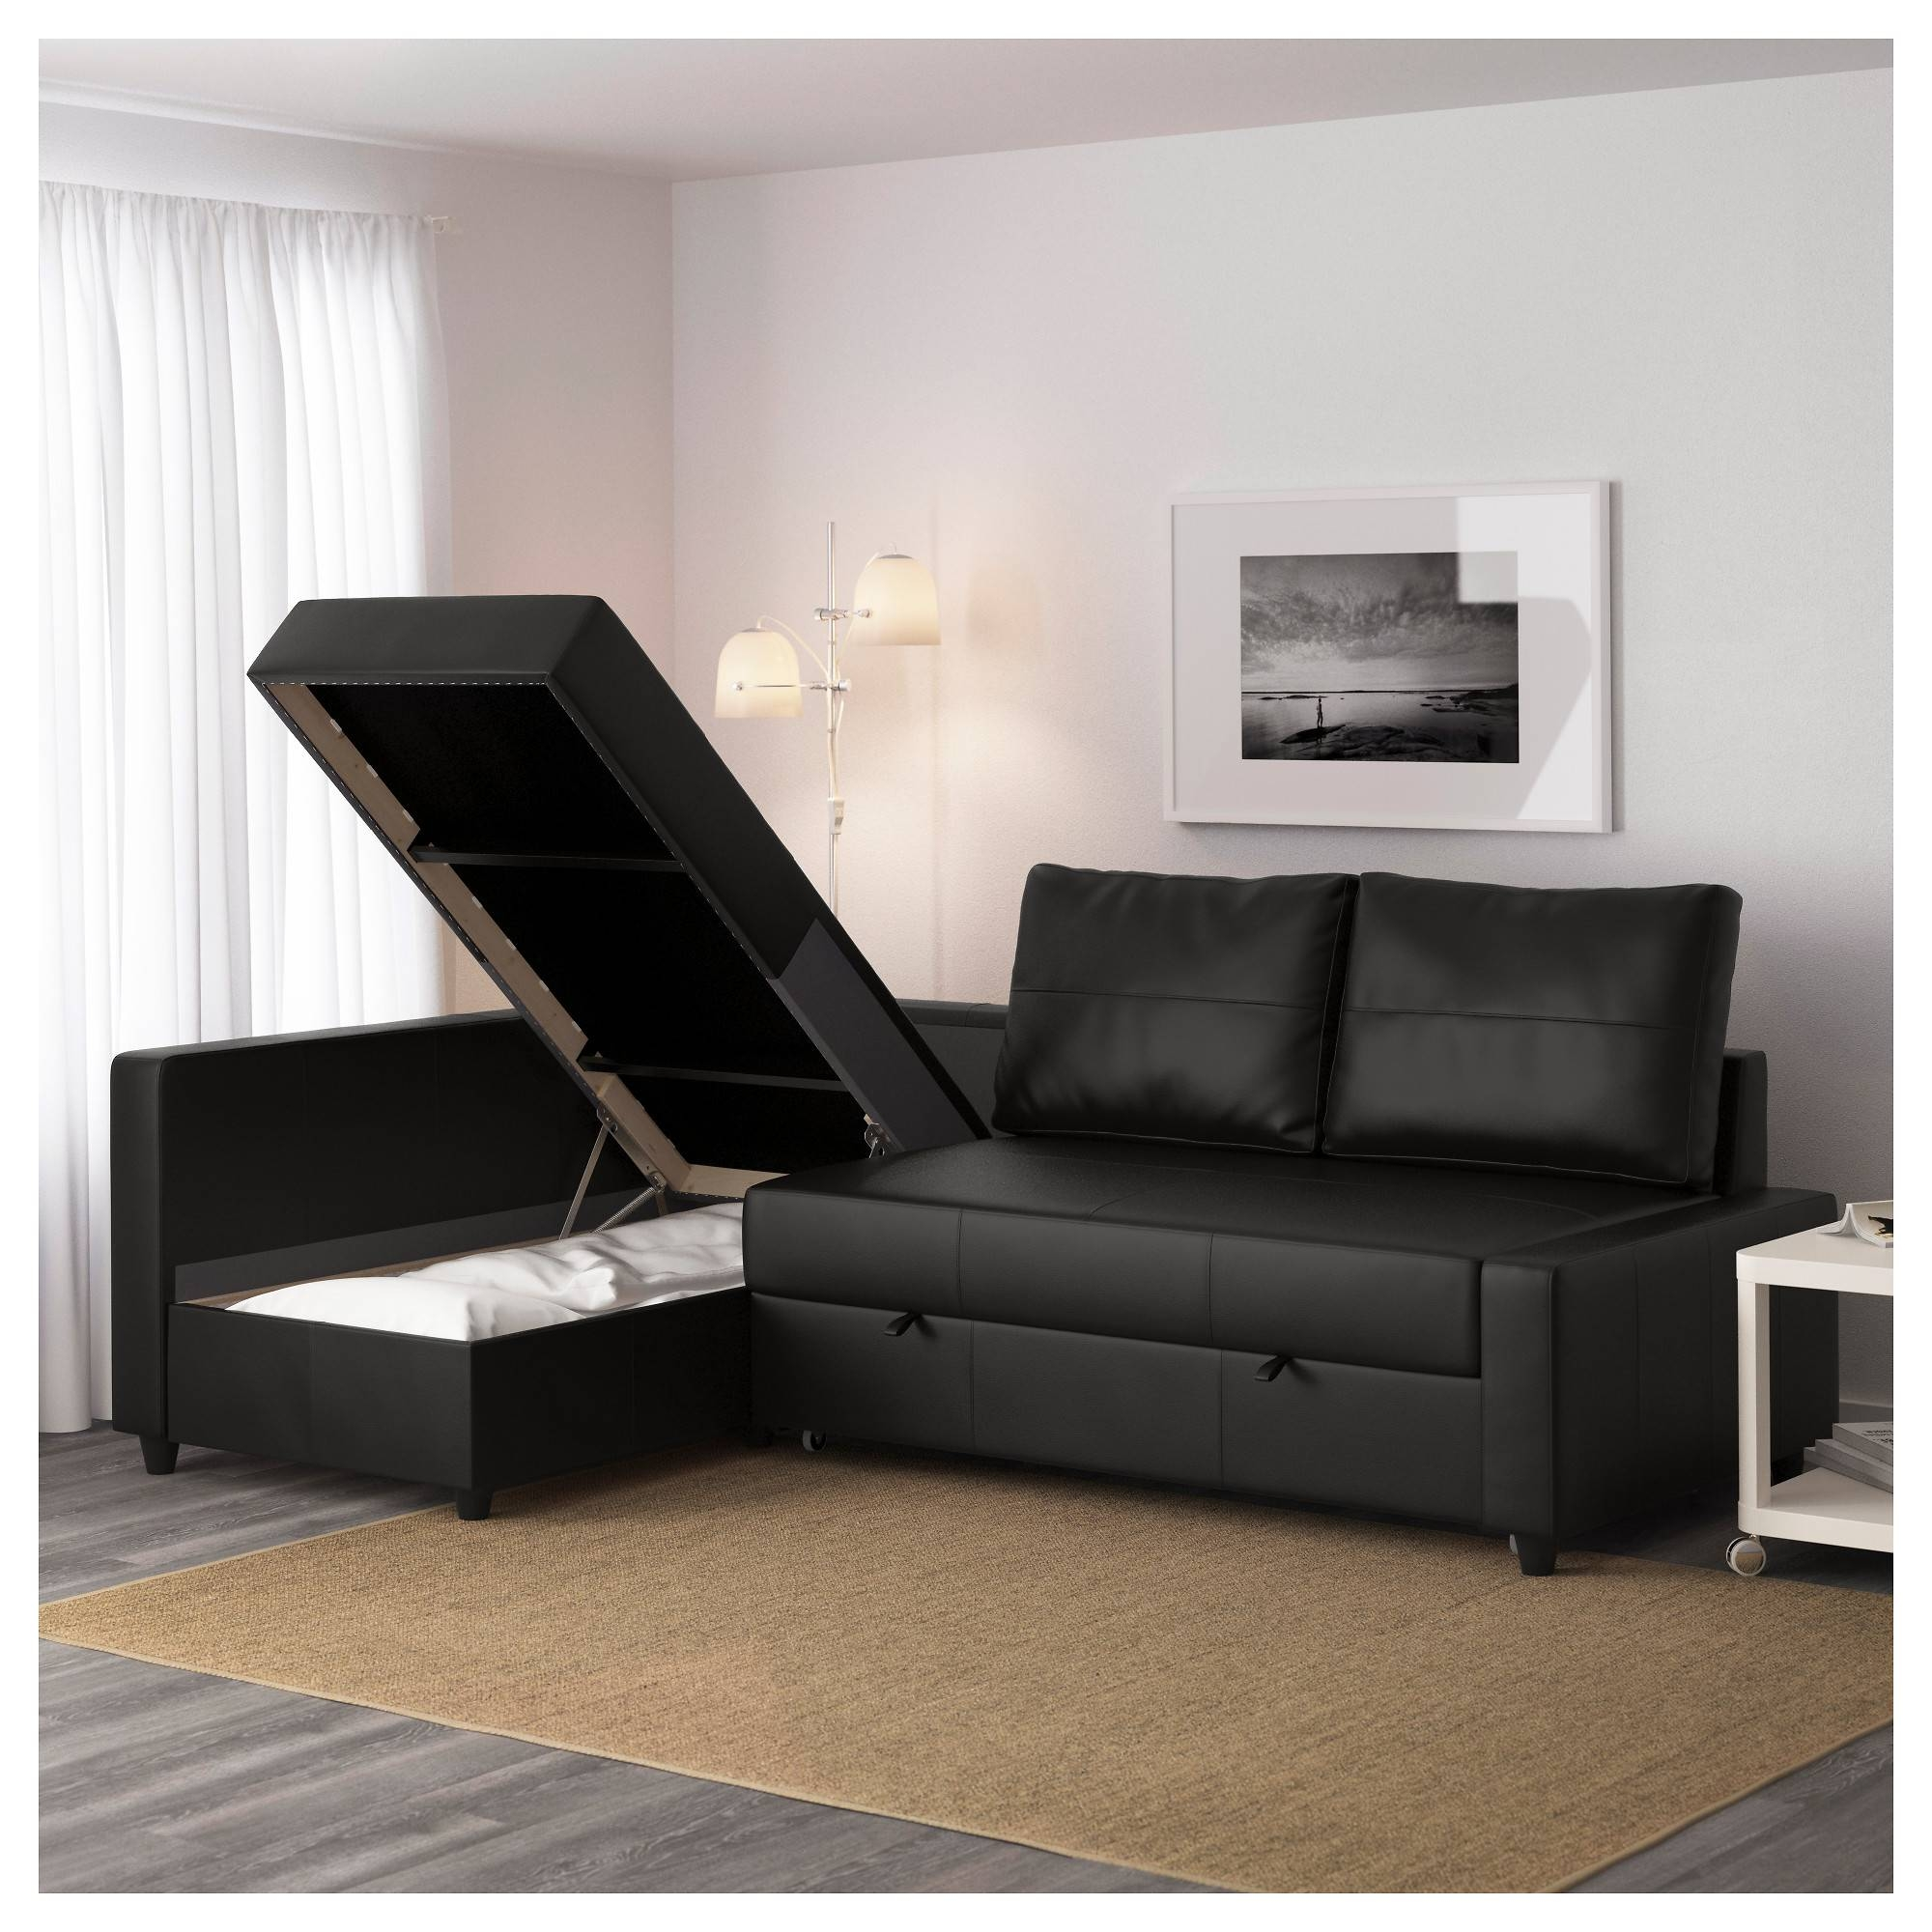 Friheten Sleeper Sectional,3 Seat W/storage - Skiftebo Dark Gray within Sofa Beds With Chaise Lounge (Image 5 of 15)